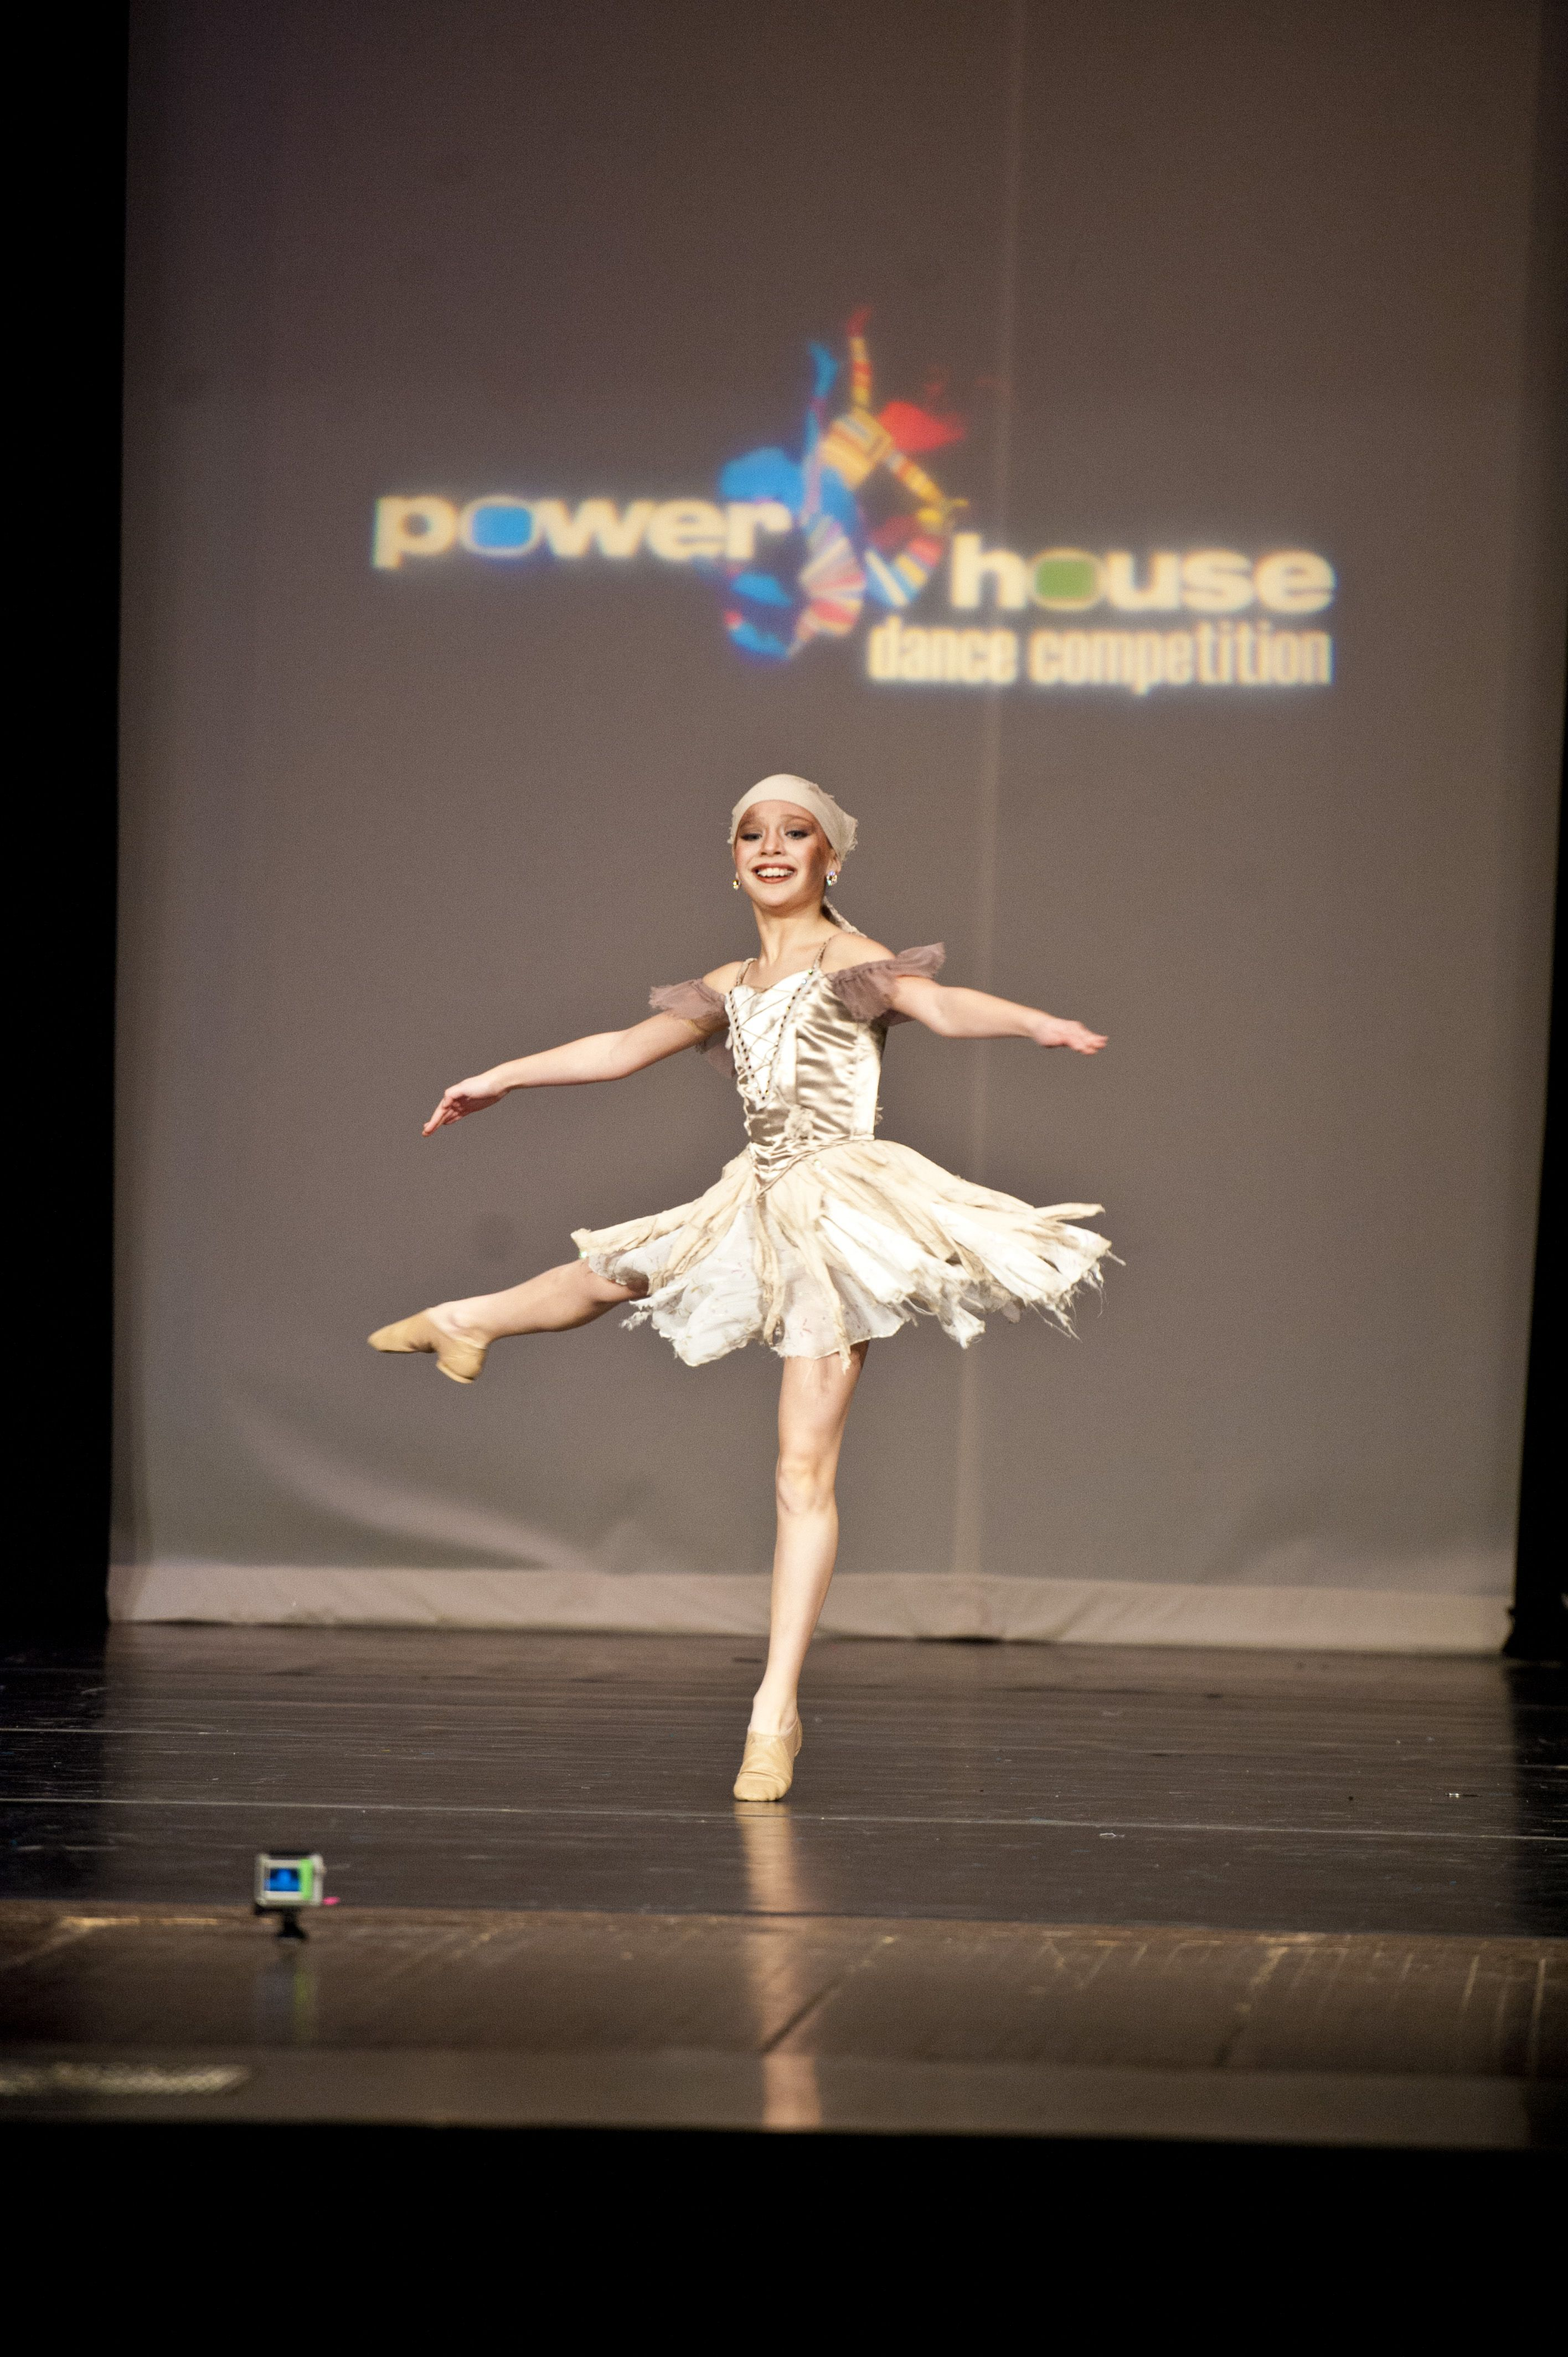 Dance Moms' Maddie performs at a dance competition ...